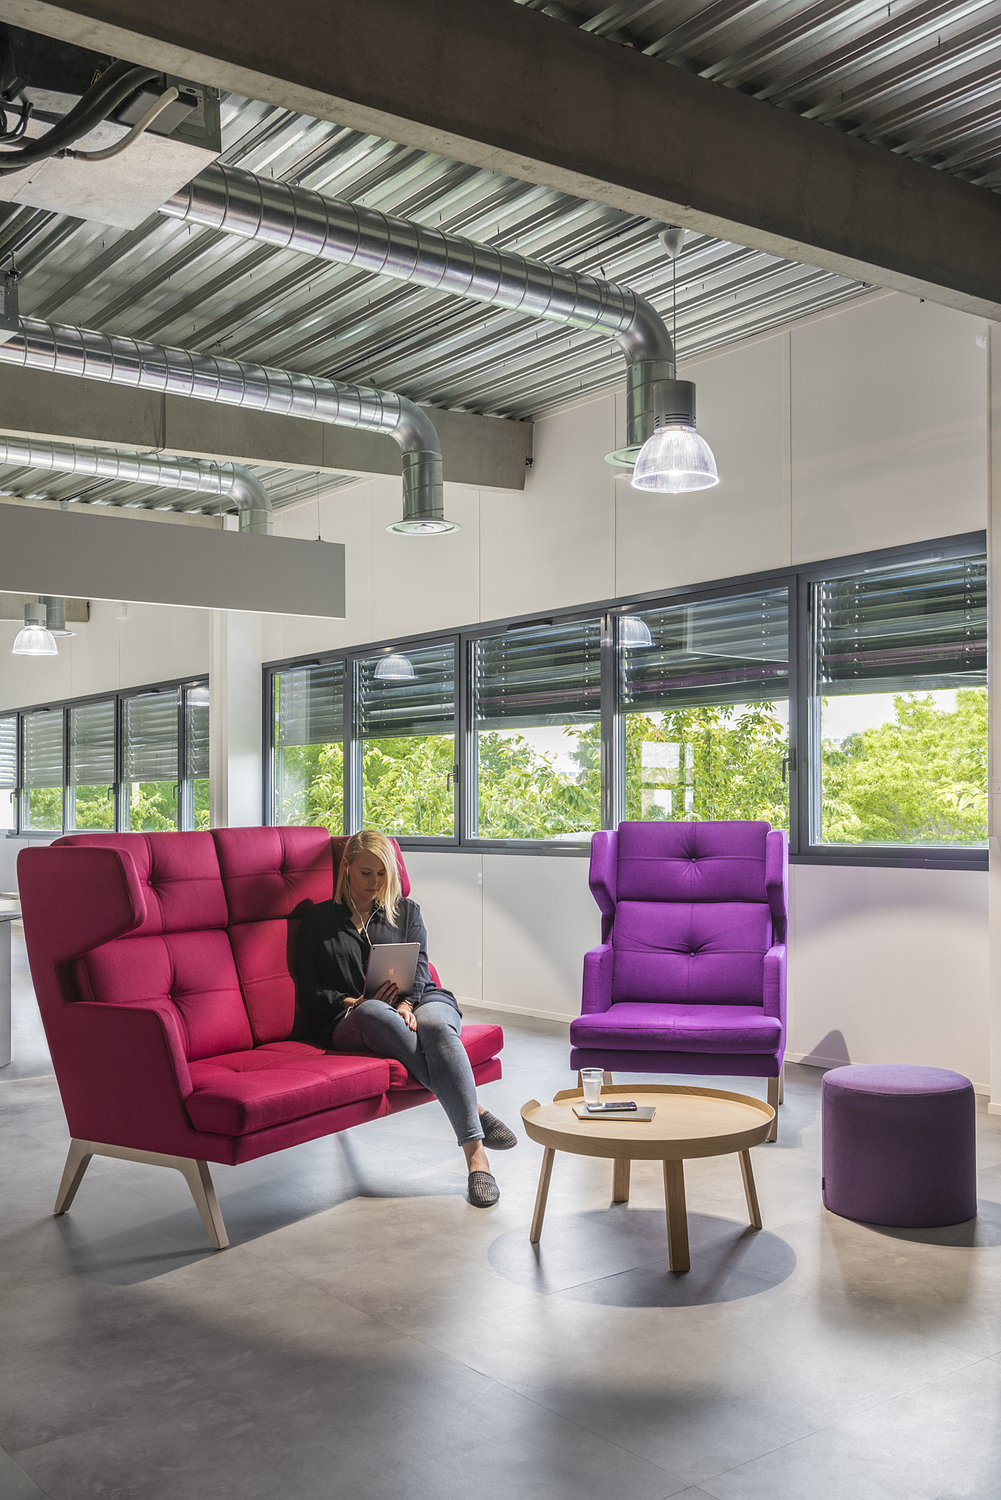 Breakout area, industrial style workspace, Toulouse